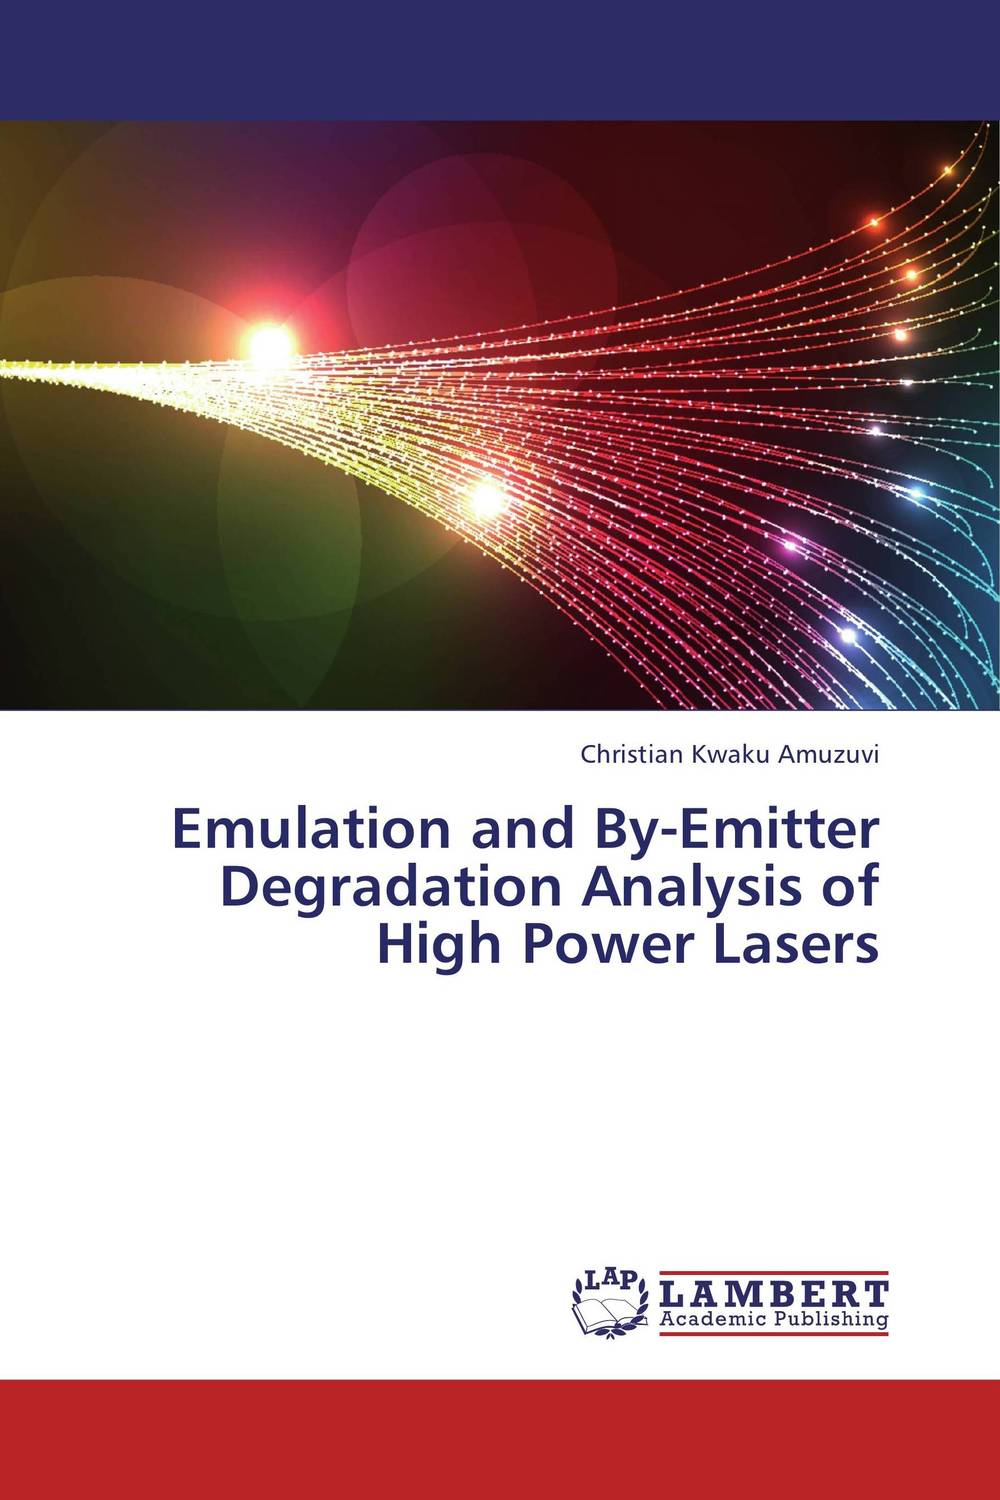 Emulation and By-Emitter Degradation Analysis of High Power Lasers benzo a pyrene bap degradation by bacillus subtilis bmt4i mtcc 9447